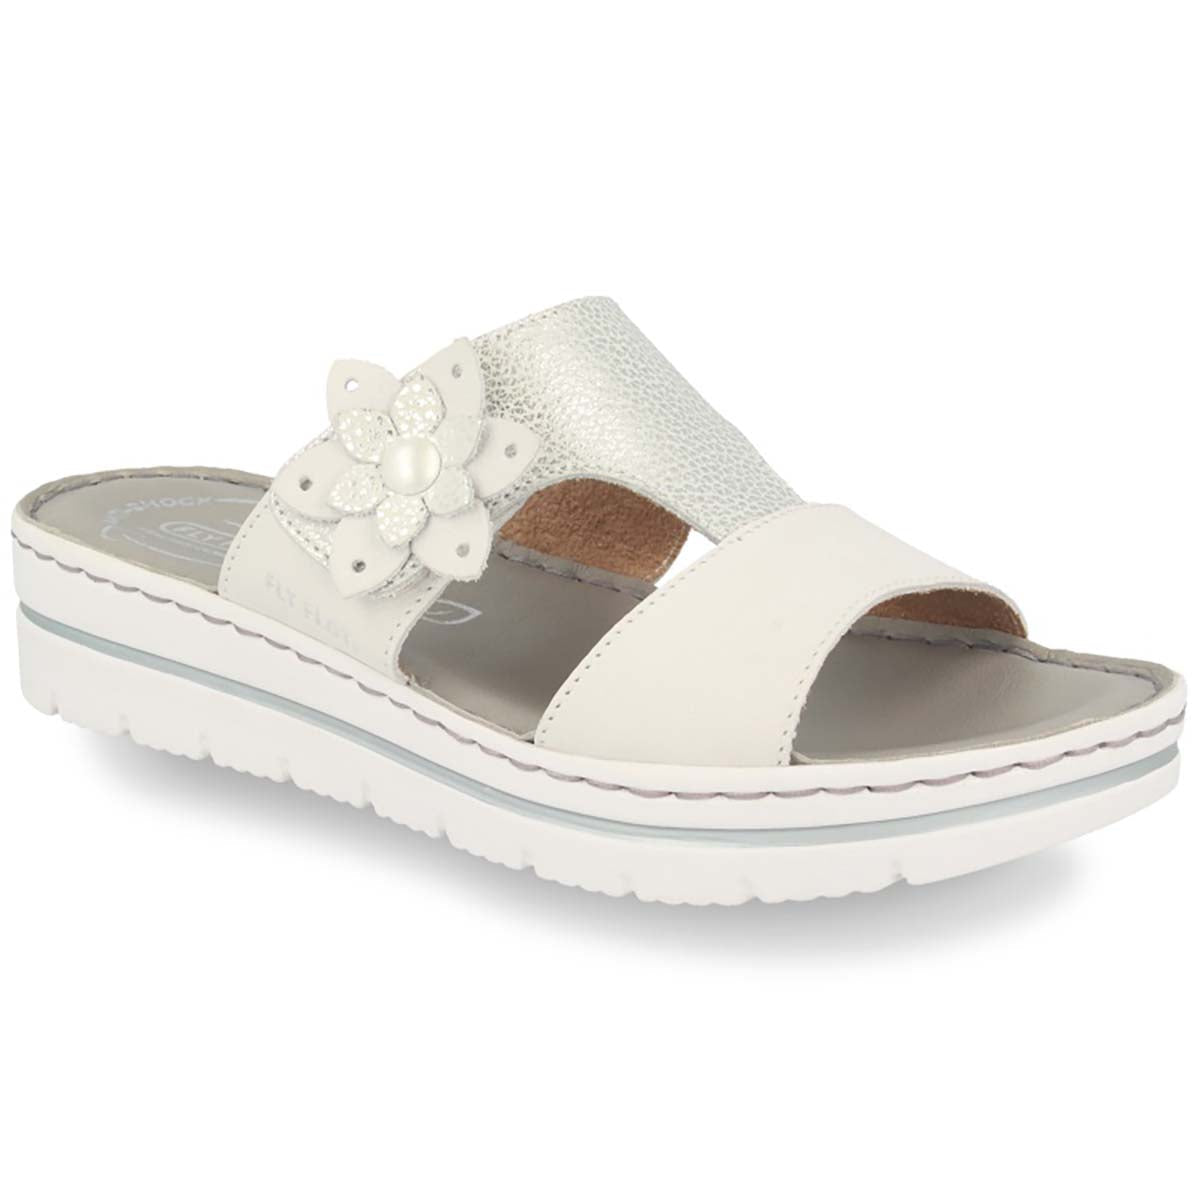 See photos Leather Woman Slipper White (25D283G)